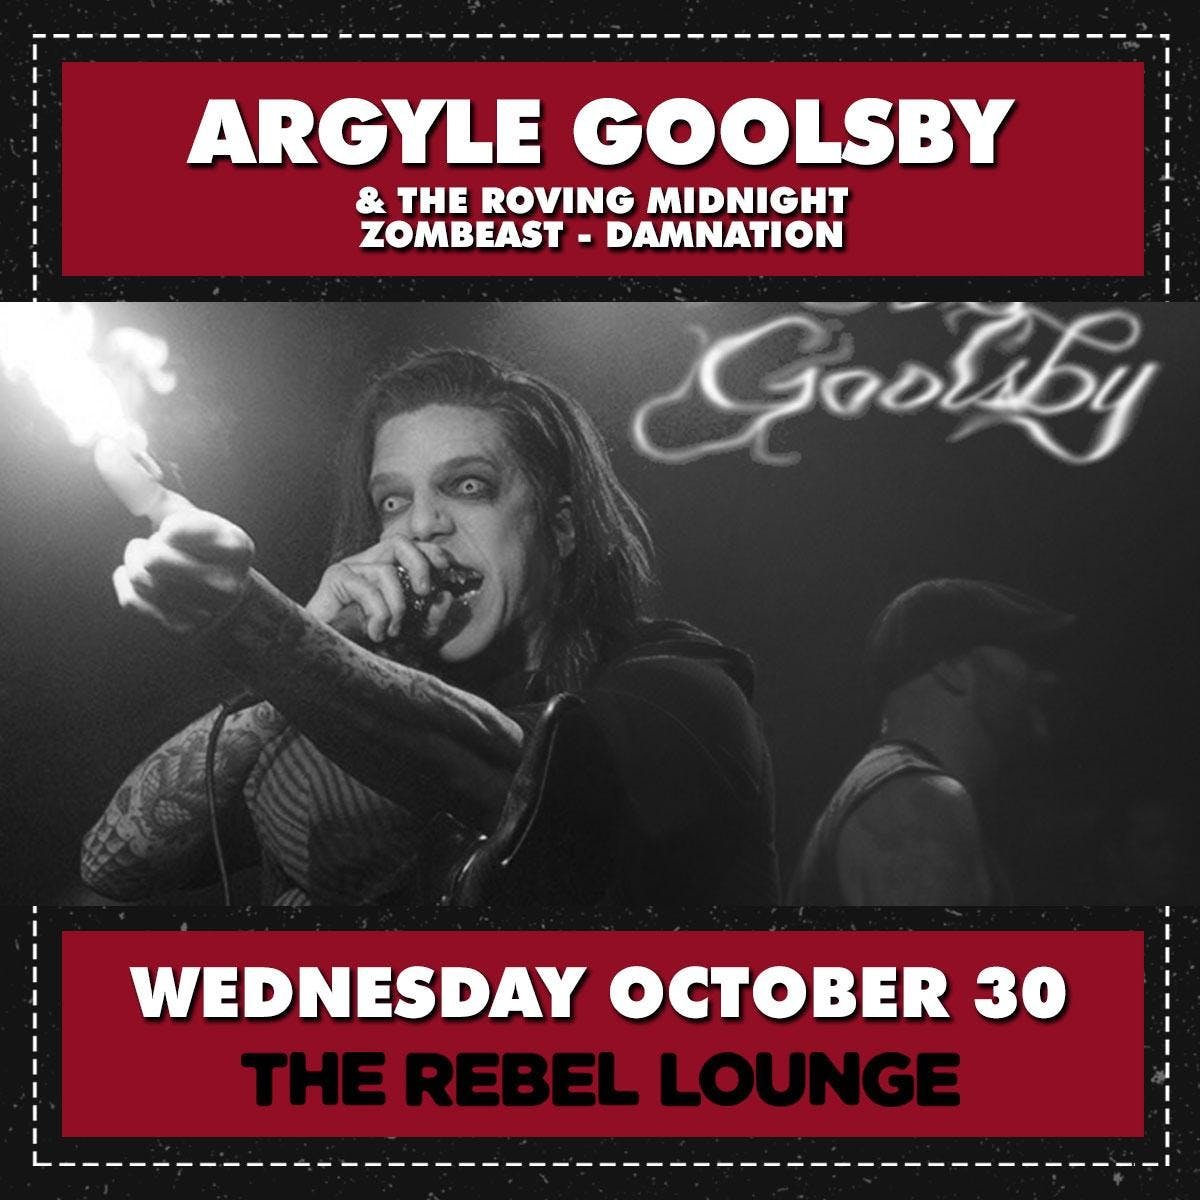 ARGYLE GOOLSBY & THE ROVING MIDNIGHT